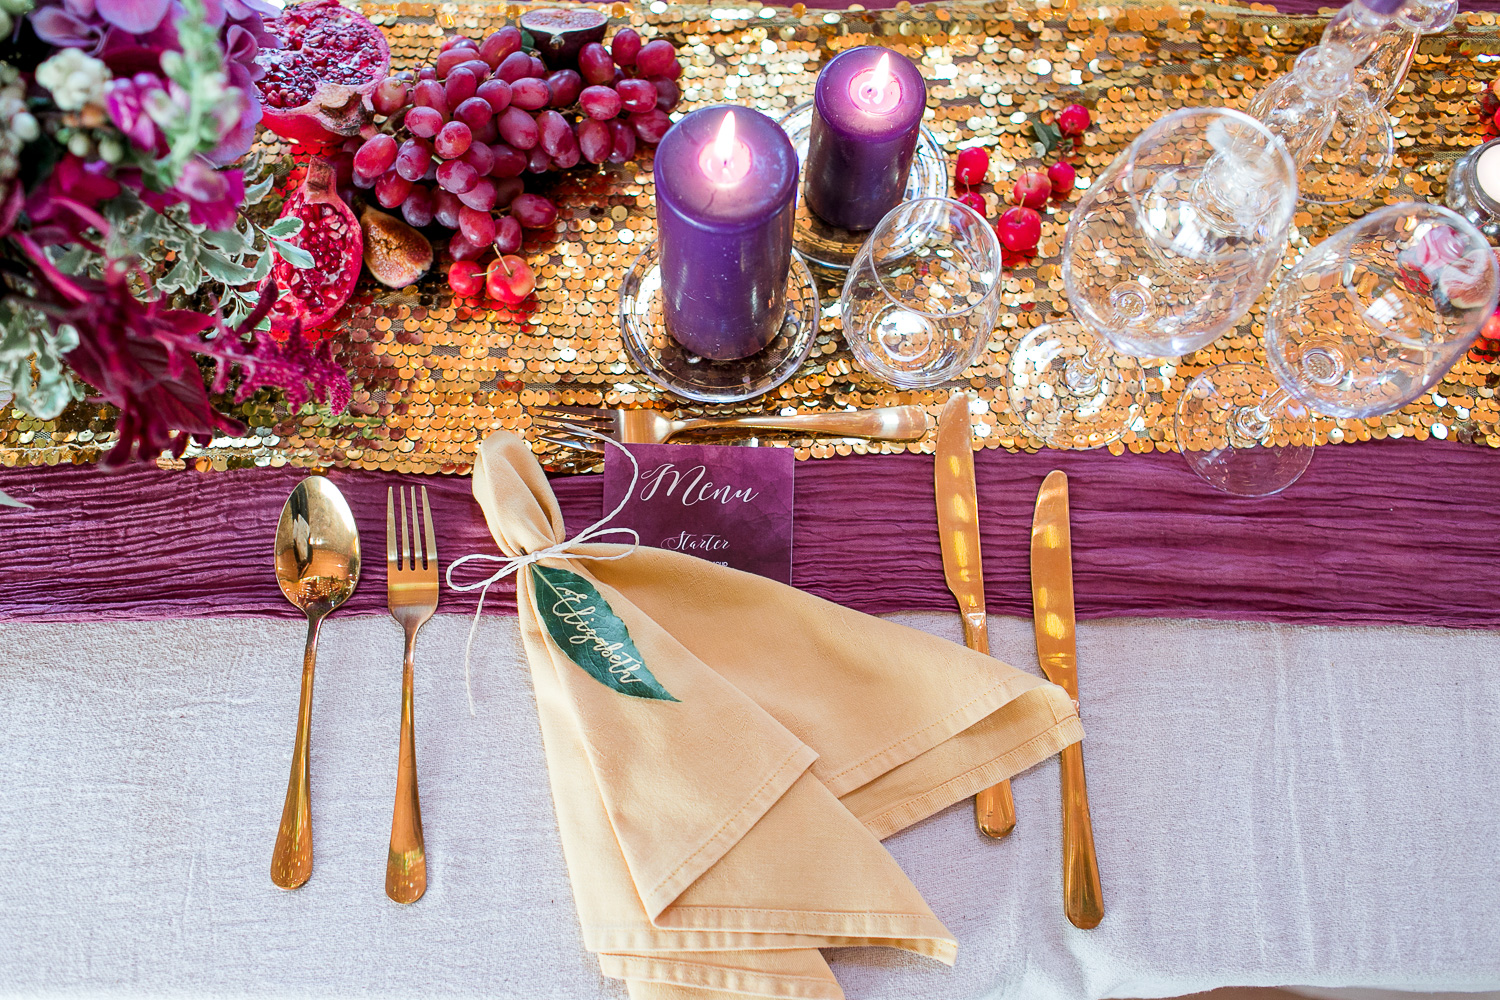 wedding table setting with sequin runner and golden cuttlery